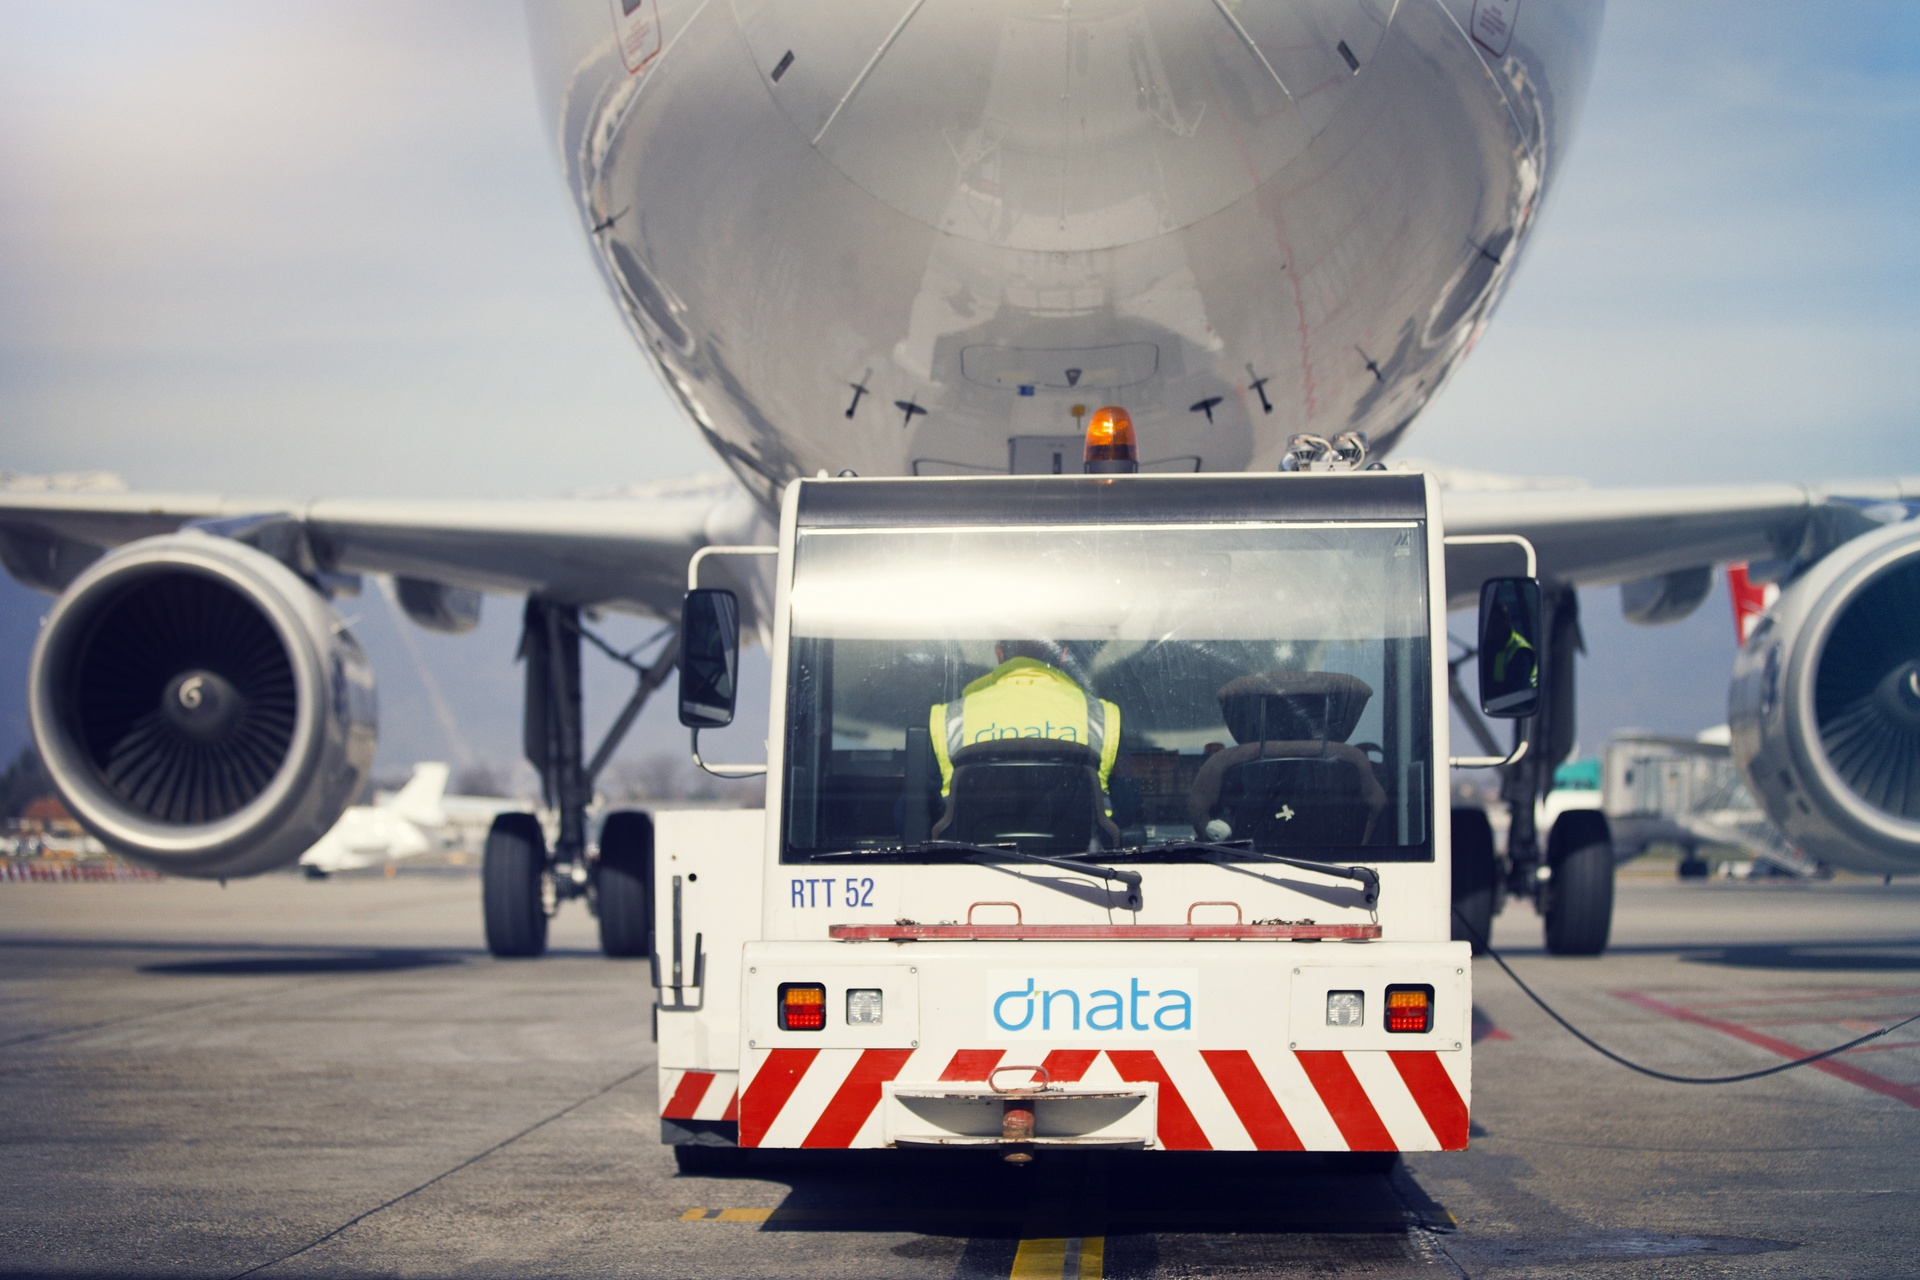 dnata awarded American Airlines ramp handling contract in Zurich